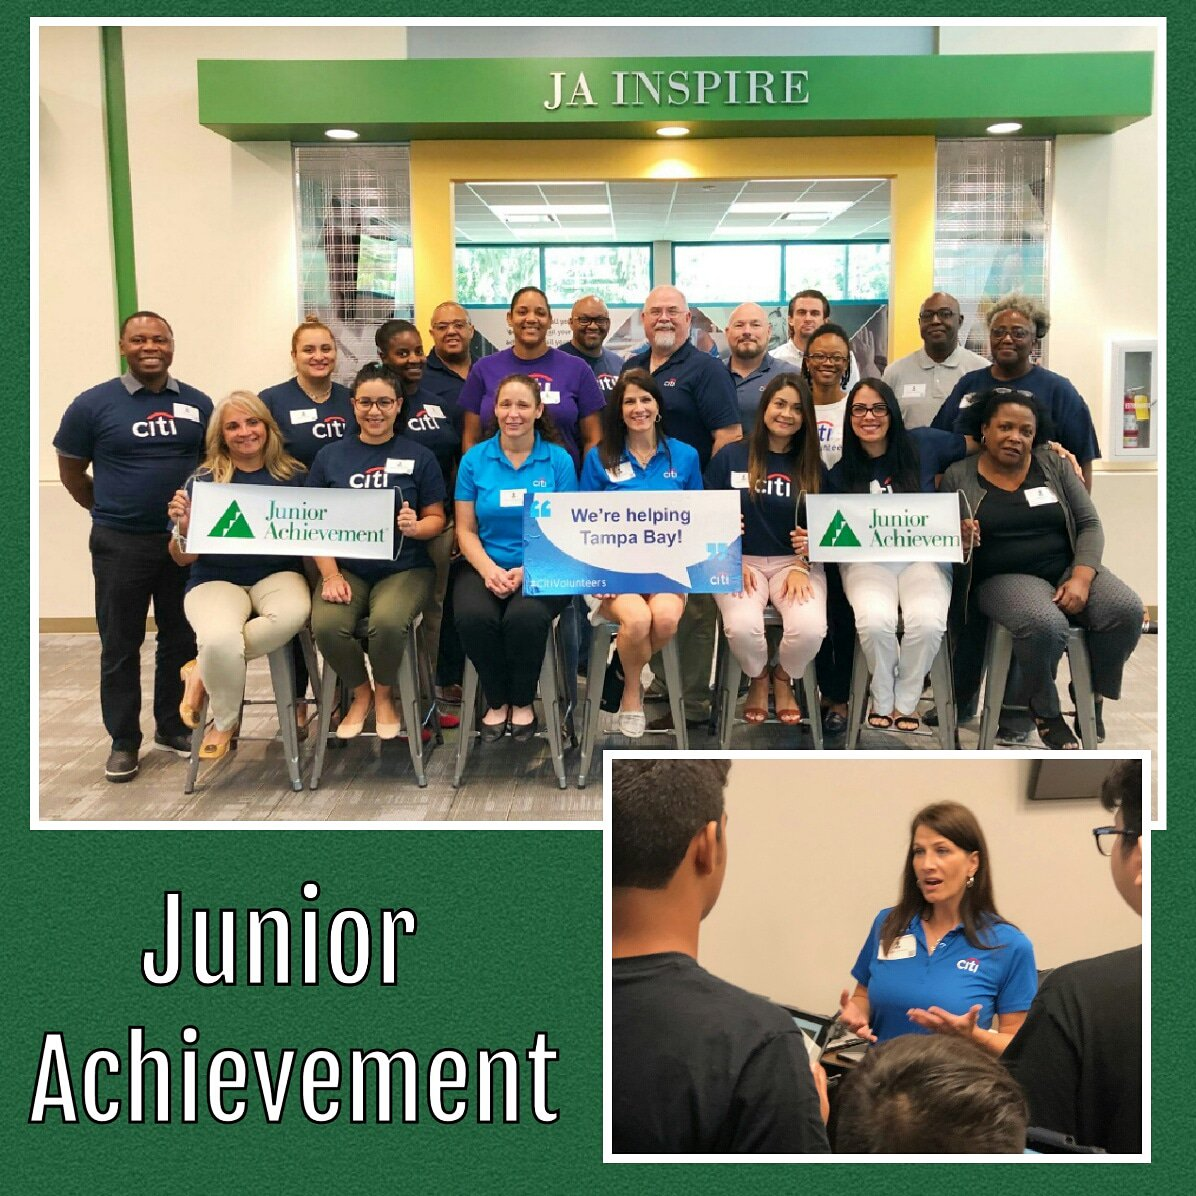 Spent my day at @jatampabay with @citi volunteers to teach 8th grade students about net income, budgeting and how their career choice will affect their futures. #citivolunteers #JAFinanceParkTB  #juniorachievement @HillsboroughSch #CitiAmbassador